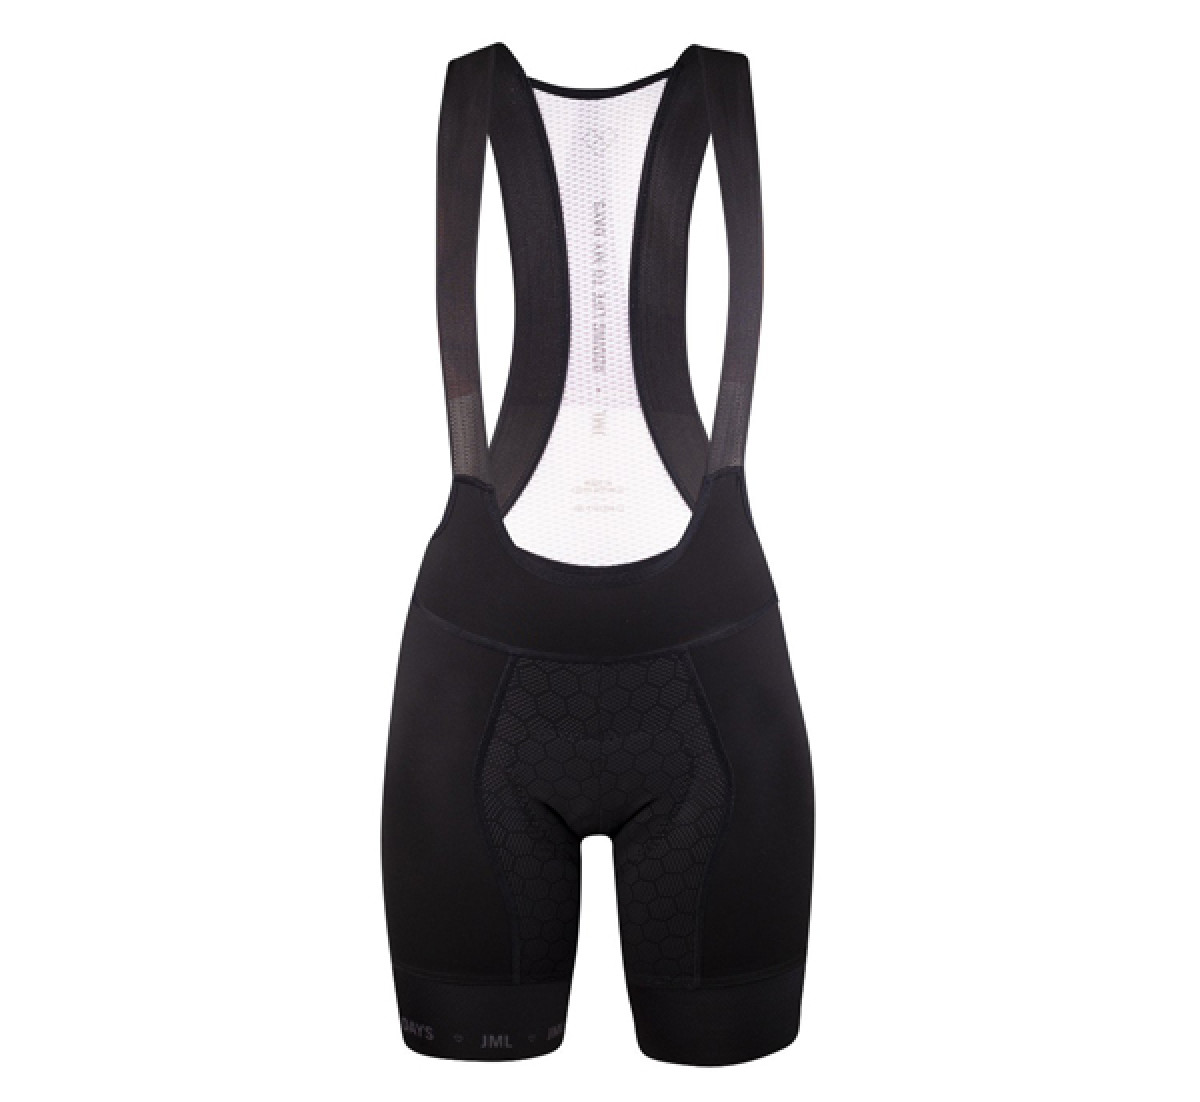 JML One W Bib Shorts